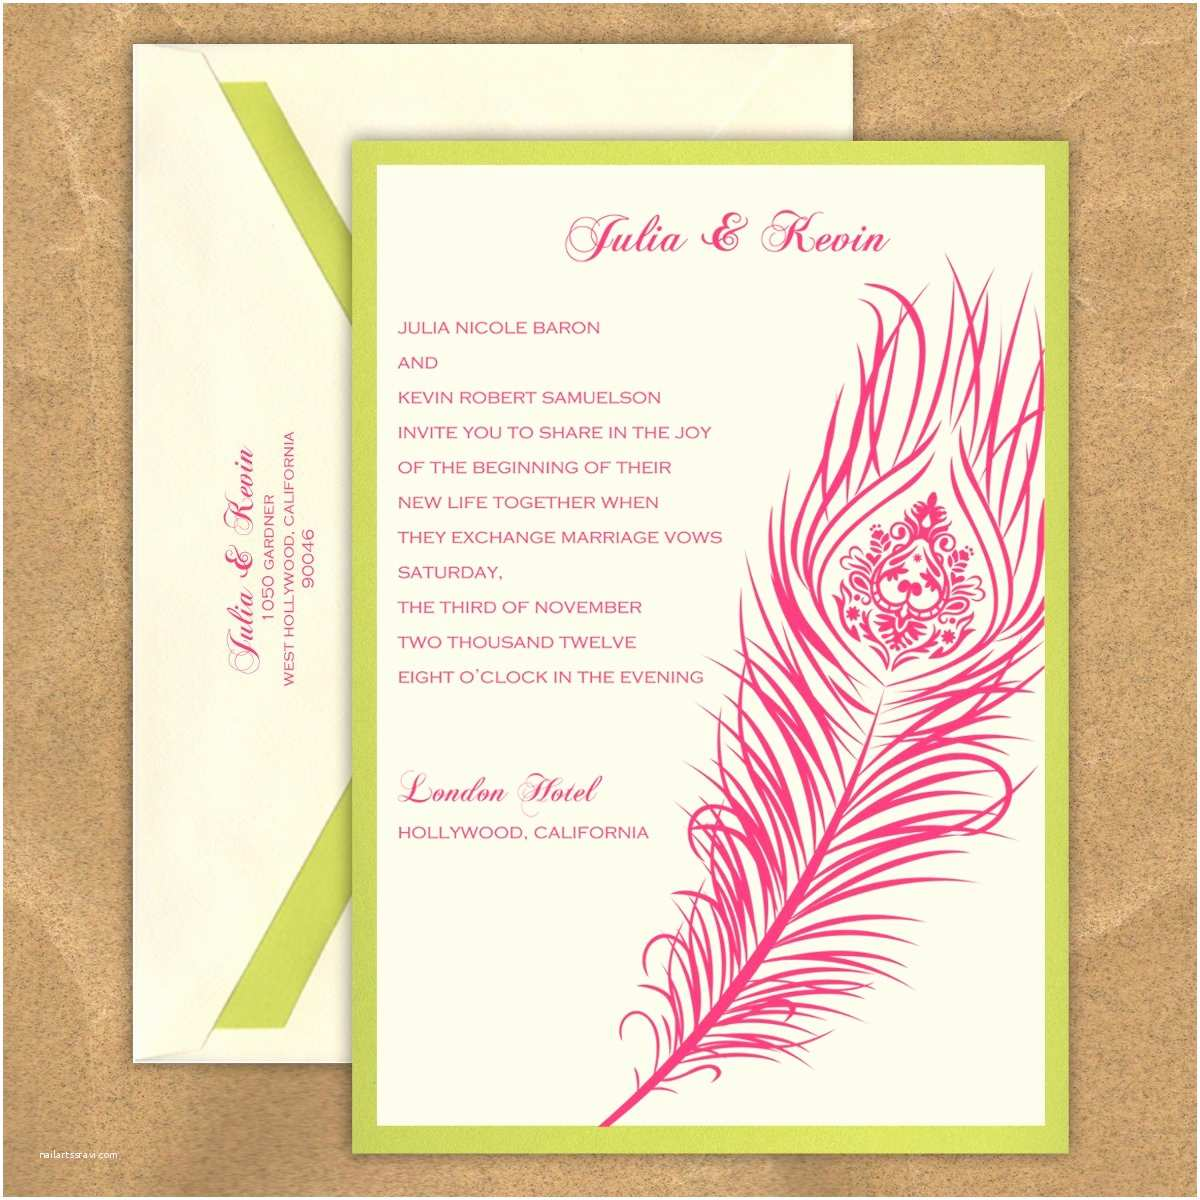 Storkie Wedding Invitations Storkie Wedding Invitations S by Storkie Express